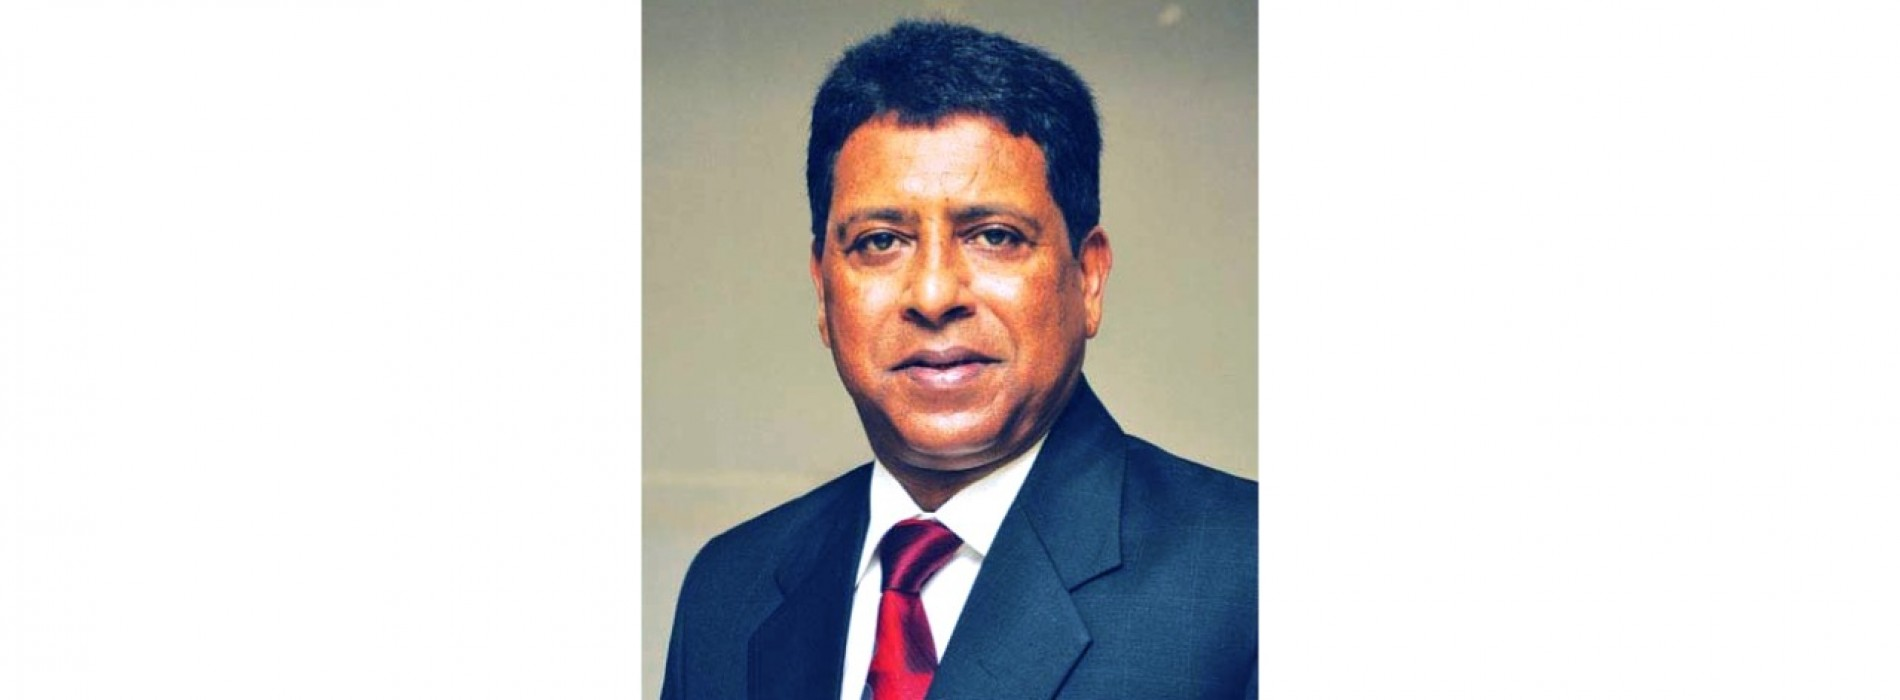 IATO Elections: Lally Mathews seeks mandate for big changes